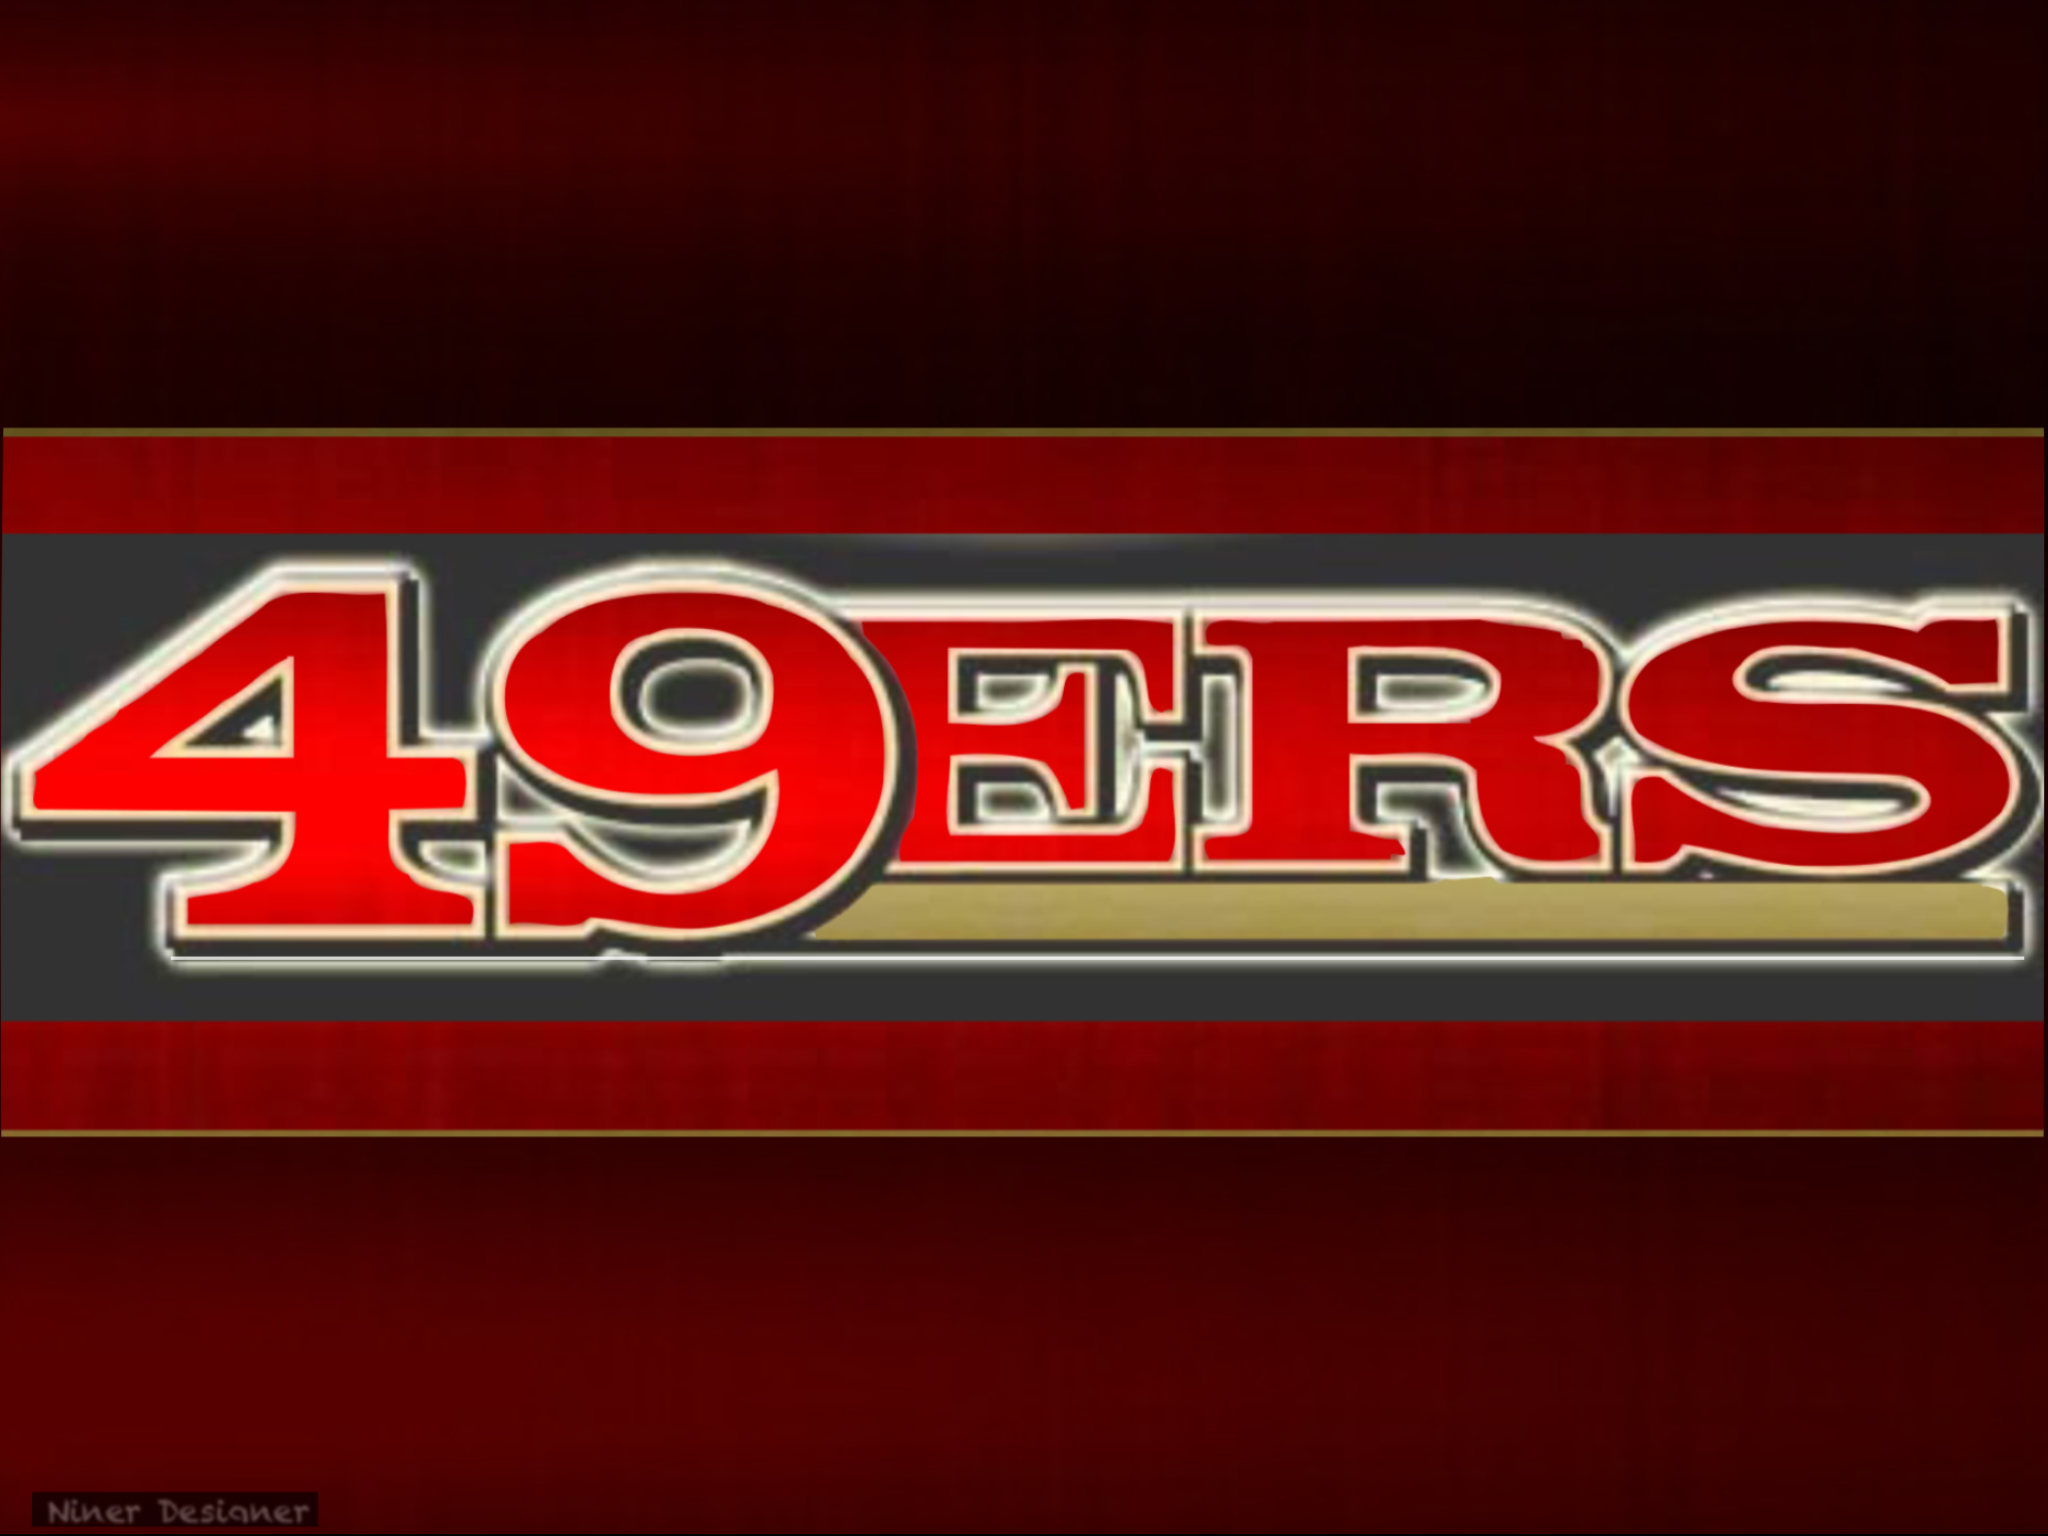 49er D Signs 0544 Nfl Football 49ers San Francisco 49ers Sf Niners